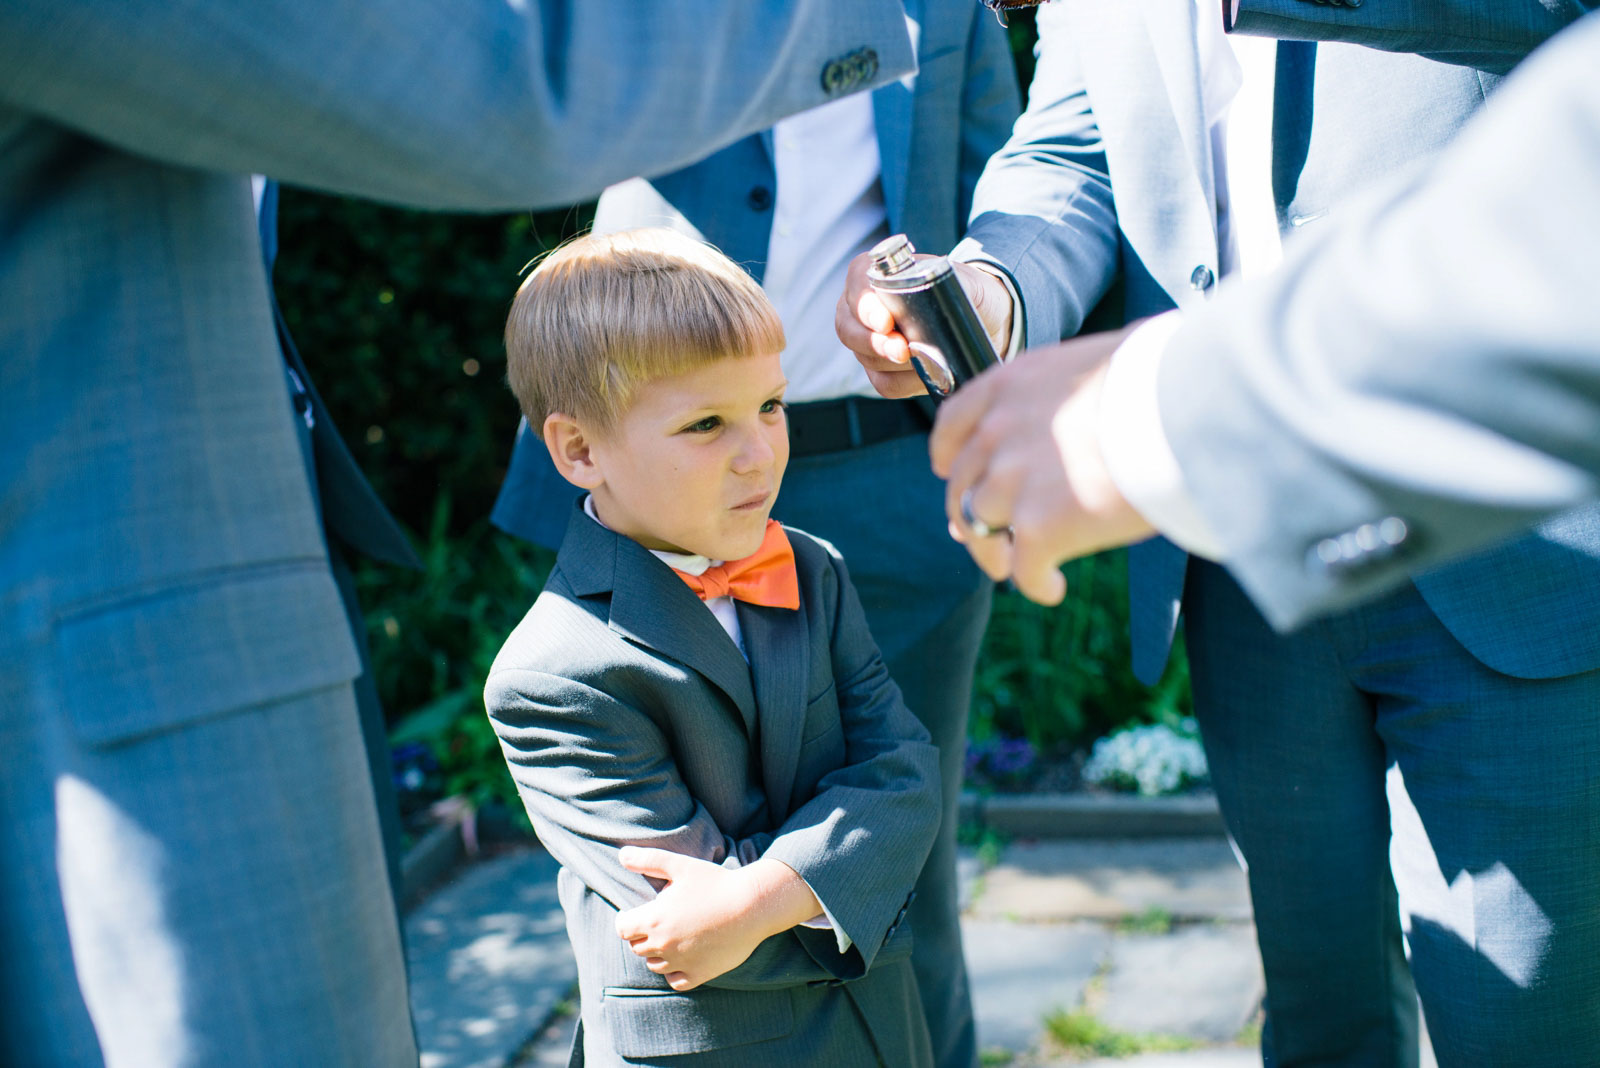 groomsmen offering drink to ring bearer during portrait session at outdoor wedding in Boston